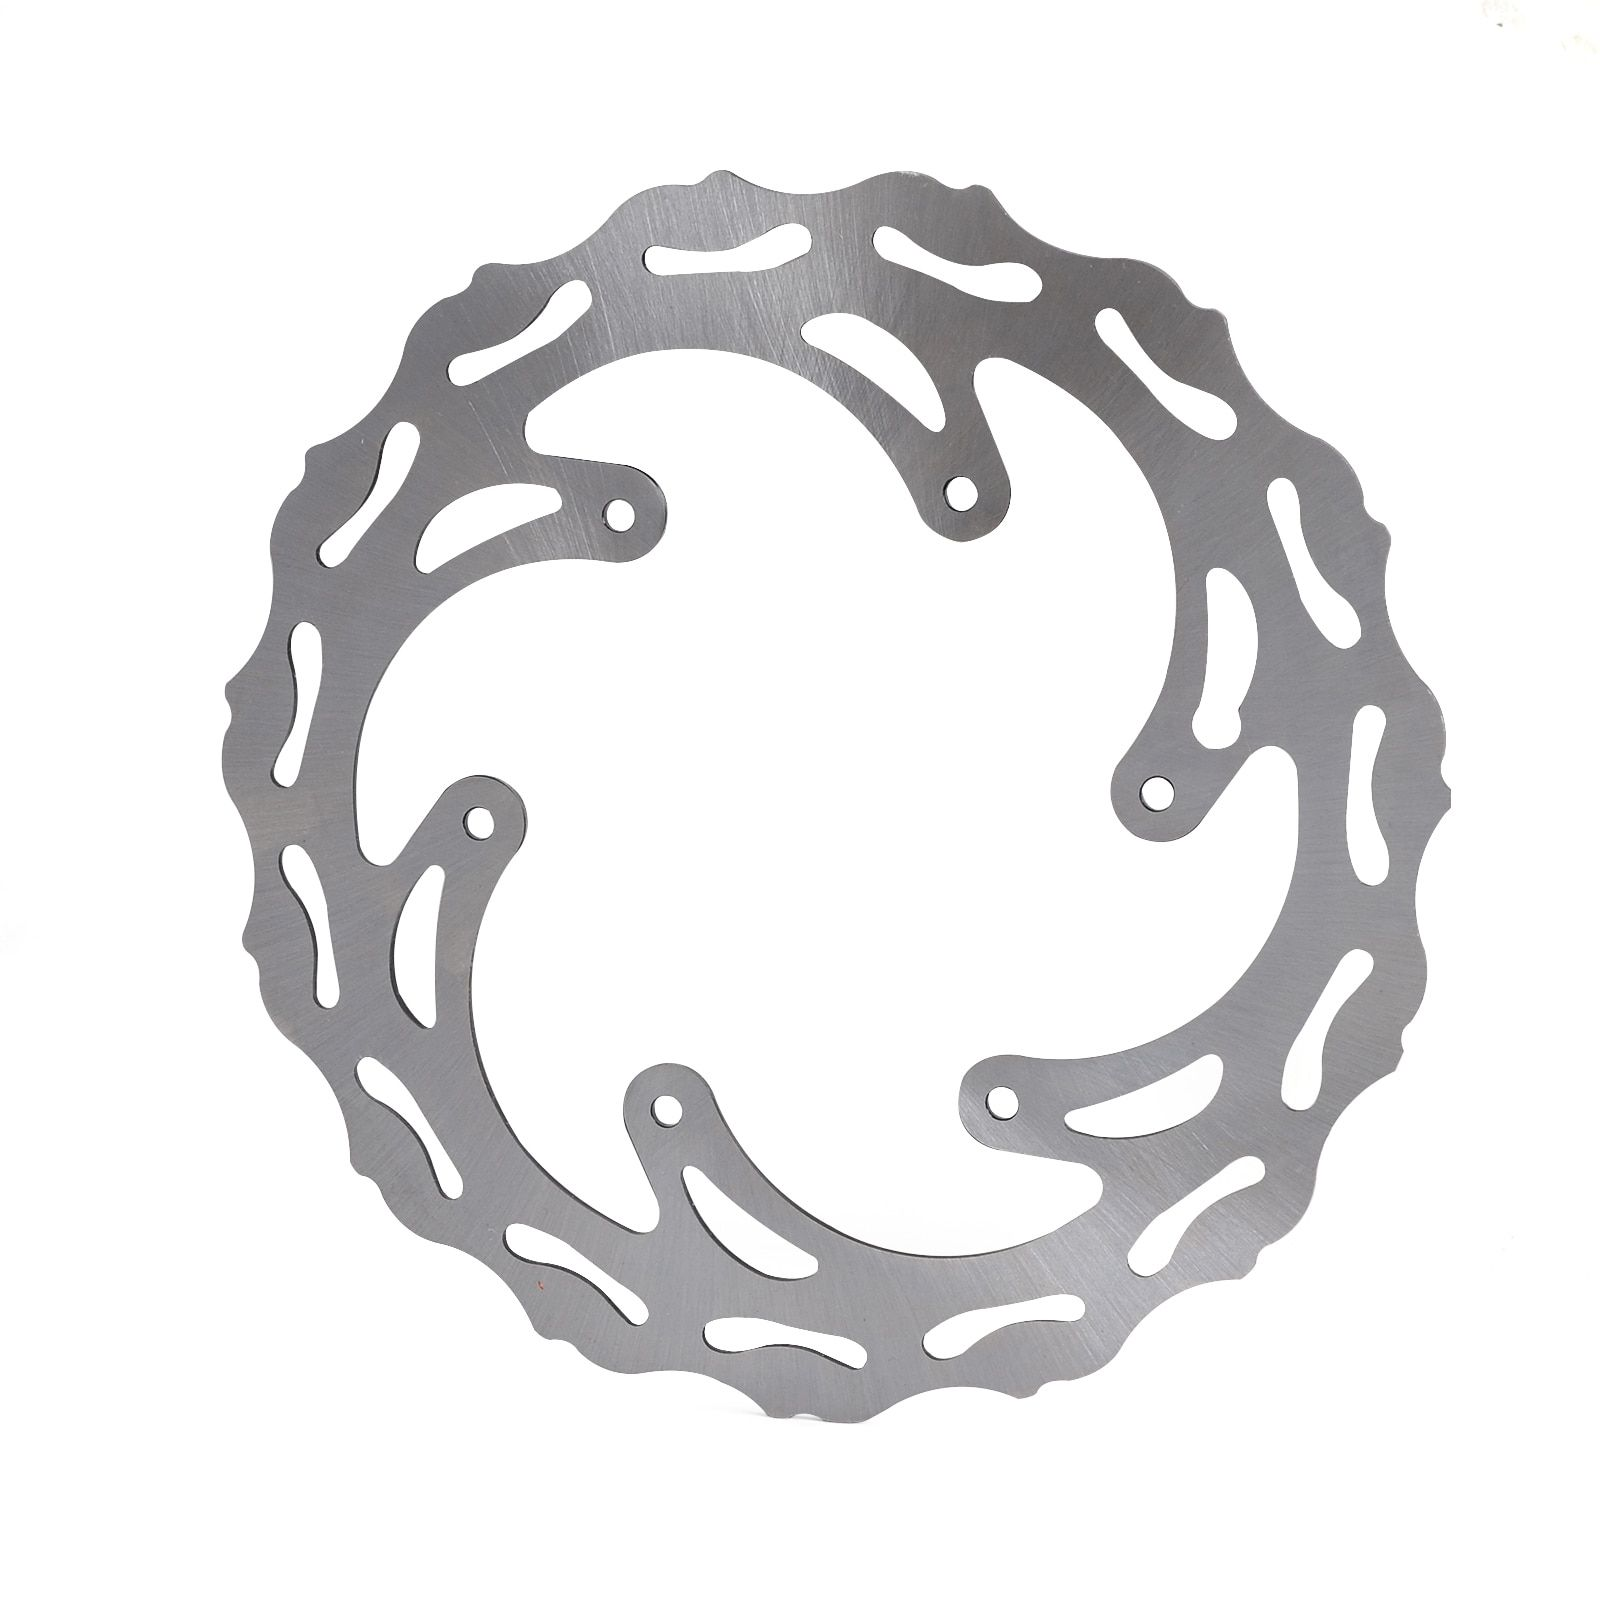 Front Brake Disc Rotor For KTM EXC 125 250 300 400 450 500 525 EXC-F SX SXF XC SIX DAYS FACTORY RACING MUSQUIN EDITION 2007-2016